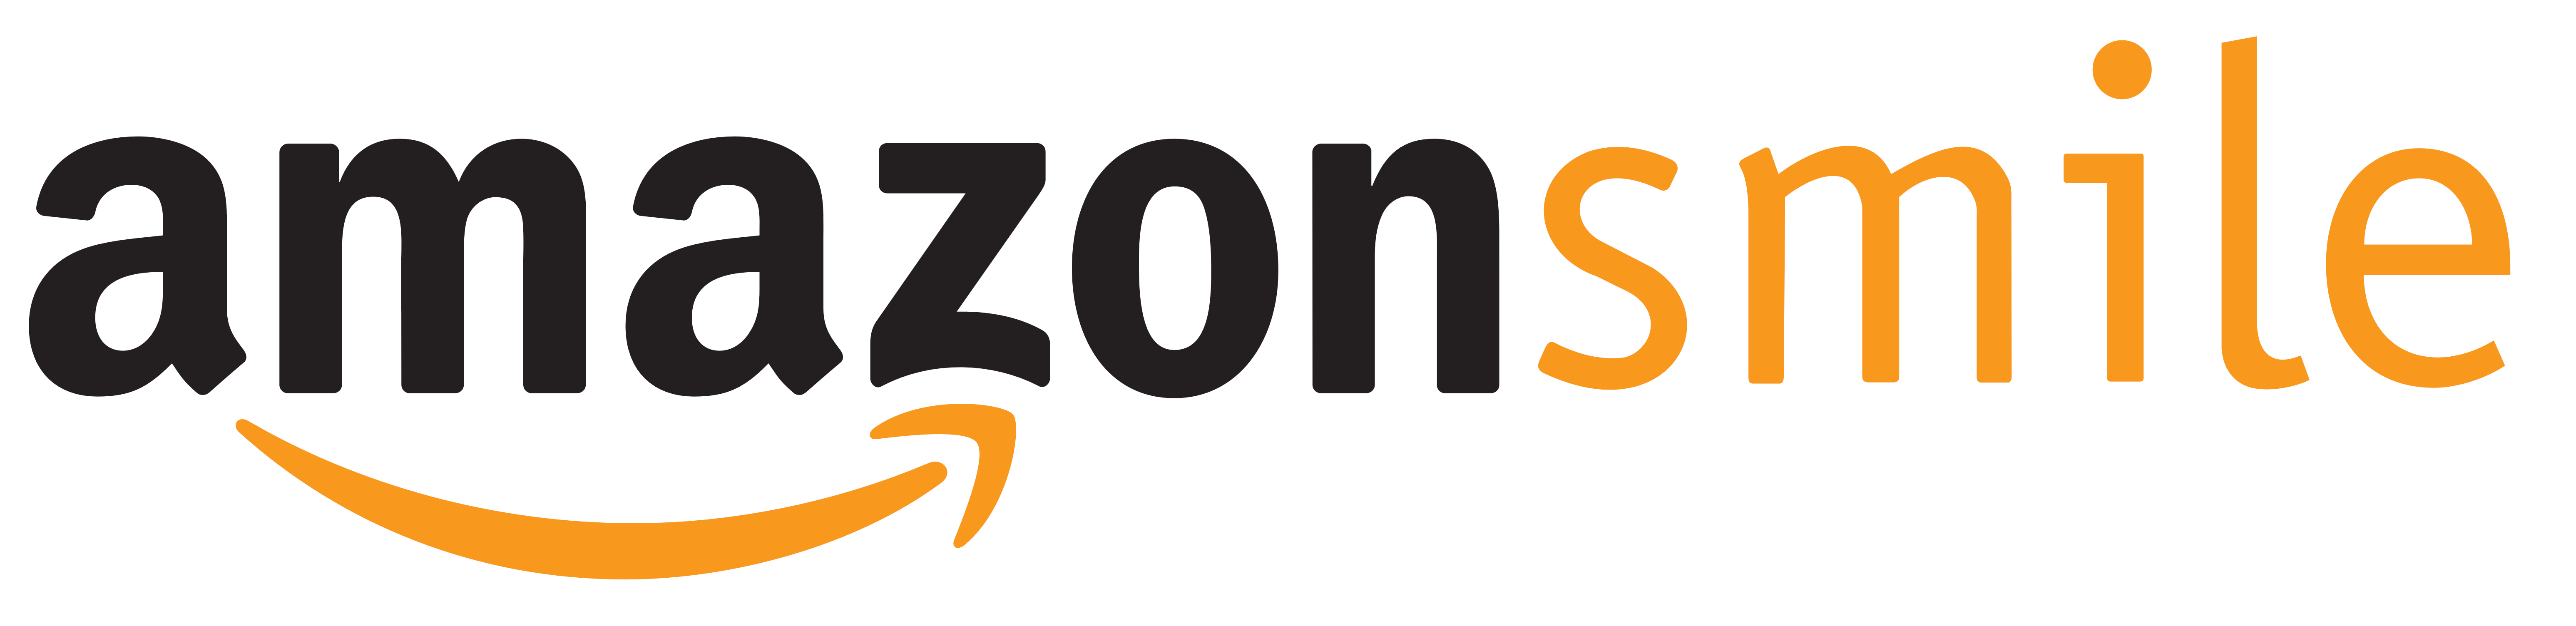 Amazon Smile Logos Download